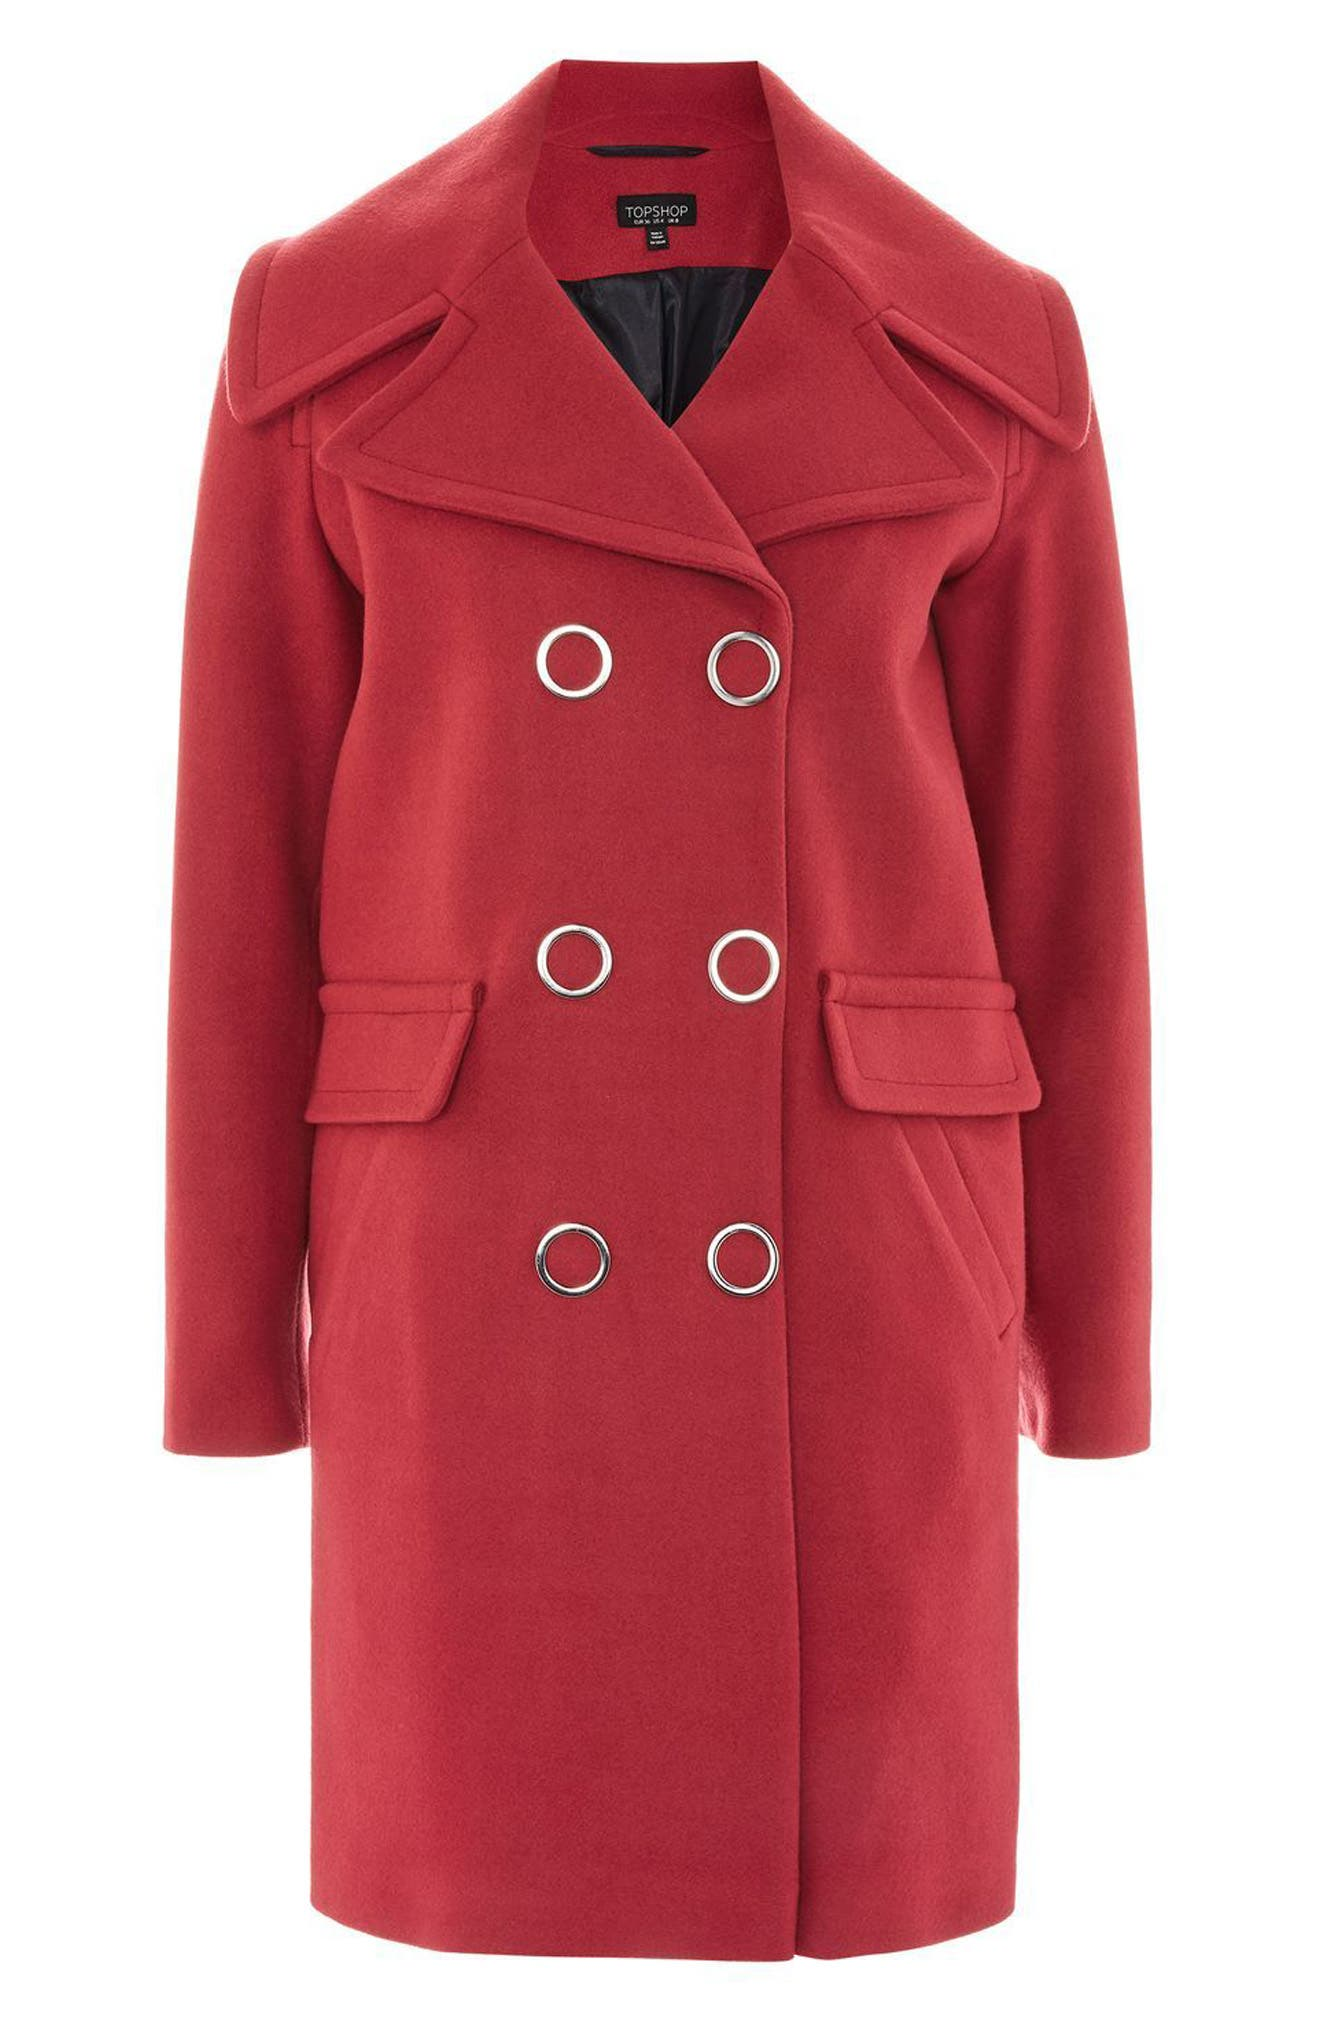 Ring Popper Cocoon Coat,                             Alternate thumbnail 4, color,                             Light Red